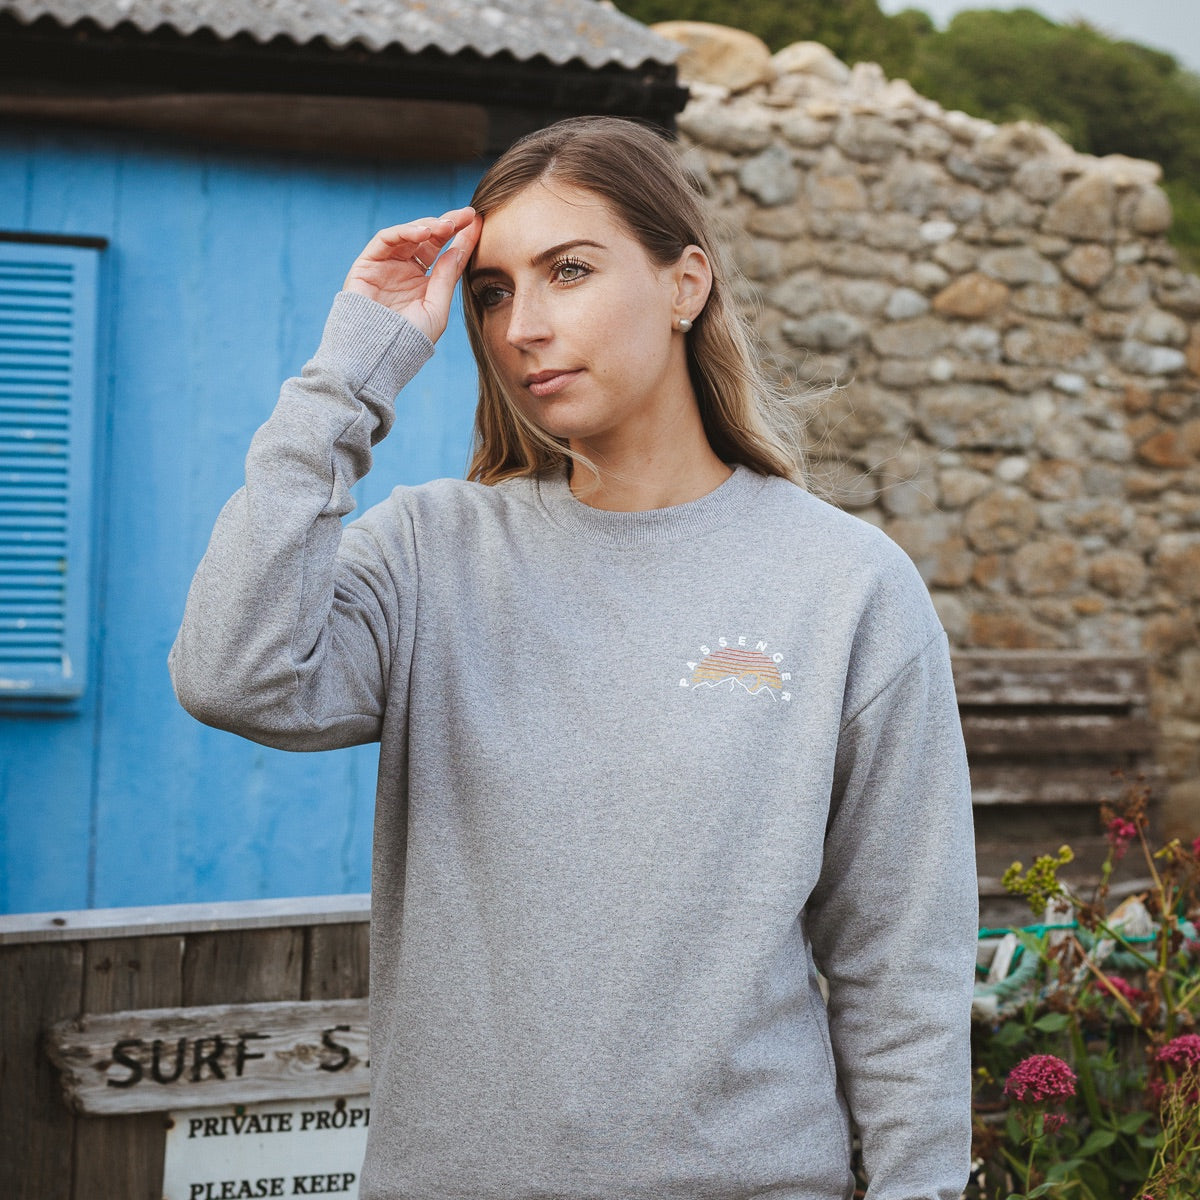 Hot Springs Sweat - Grey Marl image